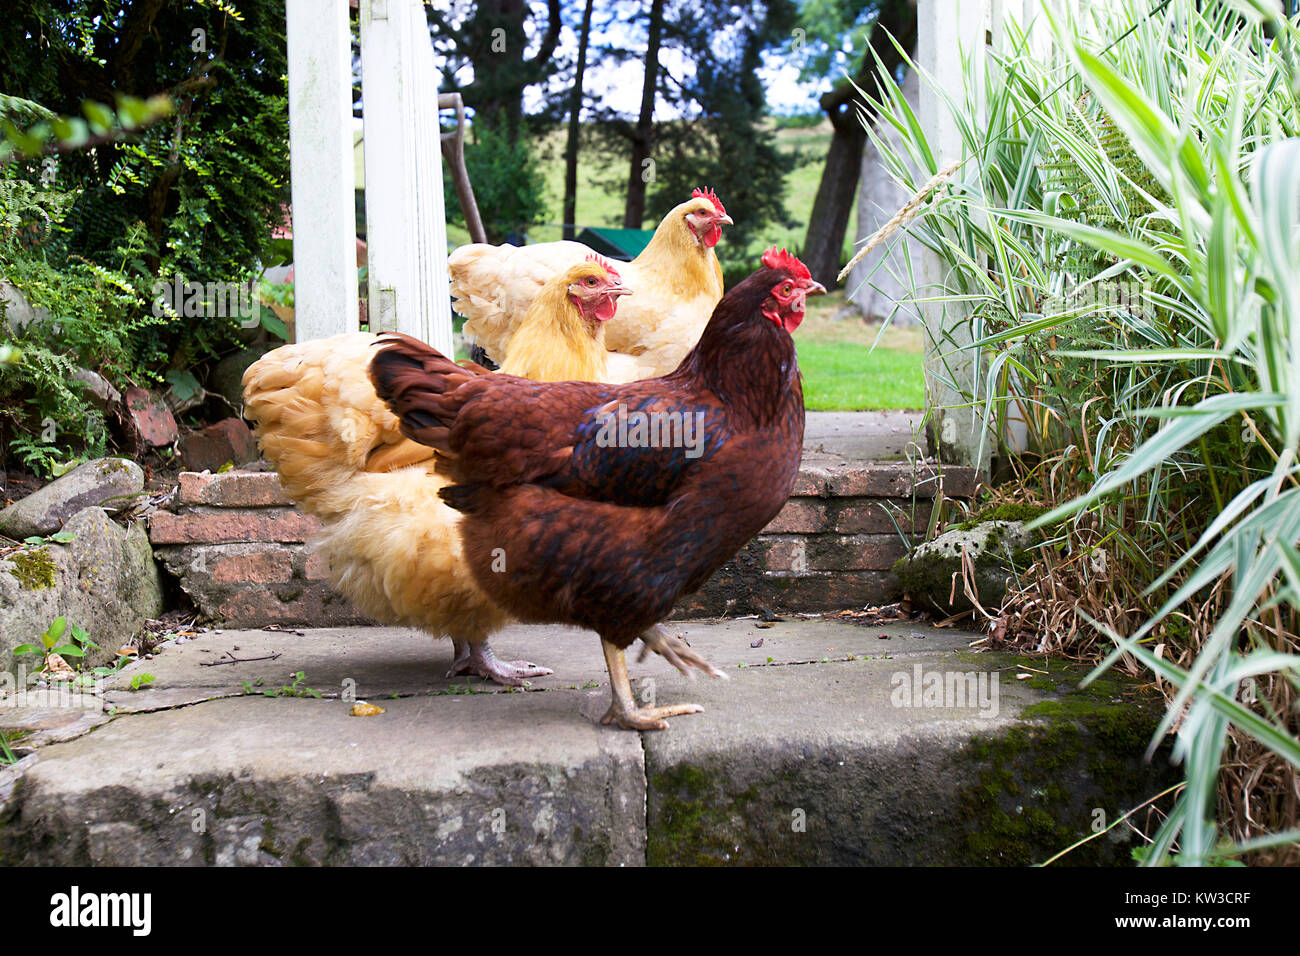 Group of hens in English garden - Stock Image